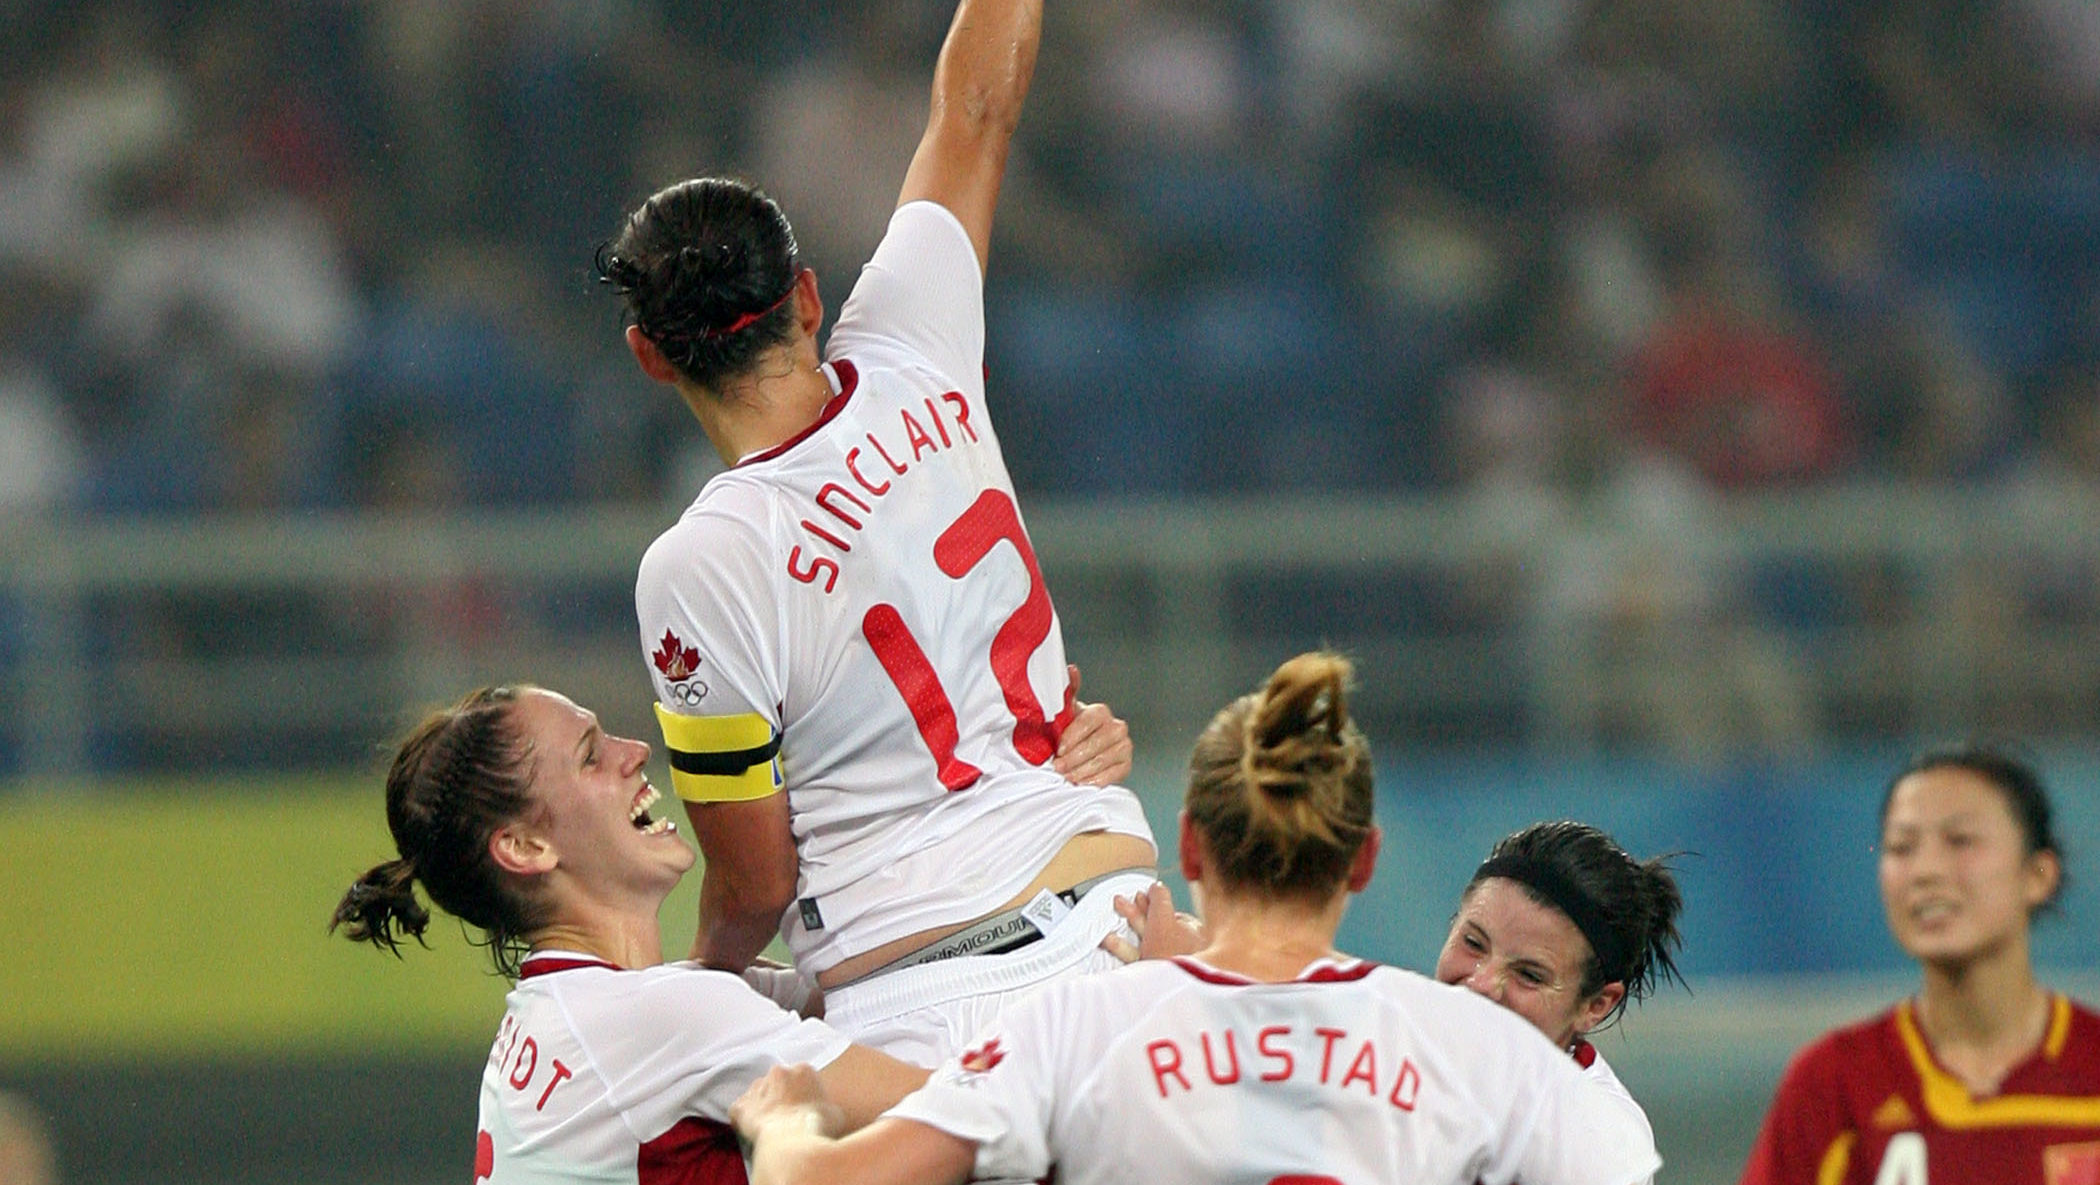 Christine Sinclair #12 of Canada has just scored during a 2008 Olympic Games match against China at TJ Olympic Centre Stadium on August 9 2008, in Tianjin China. The match ended in a 1-1 tie.